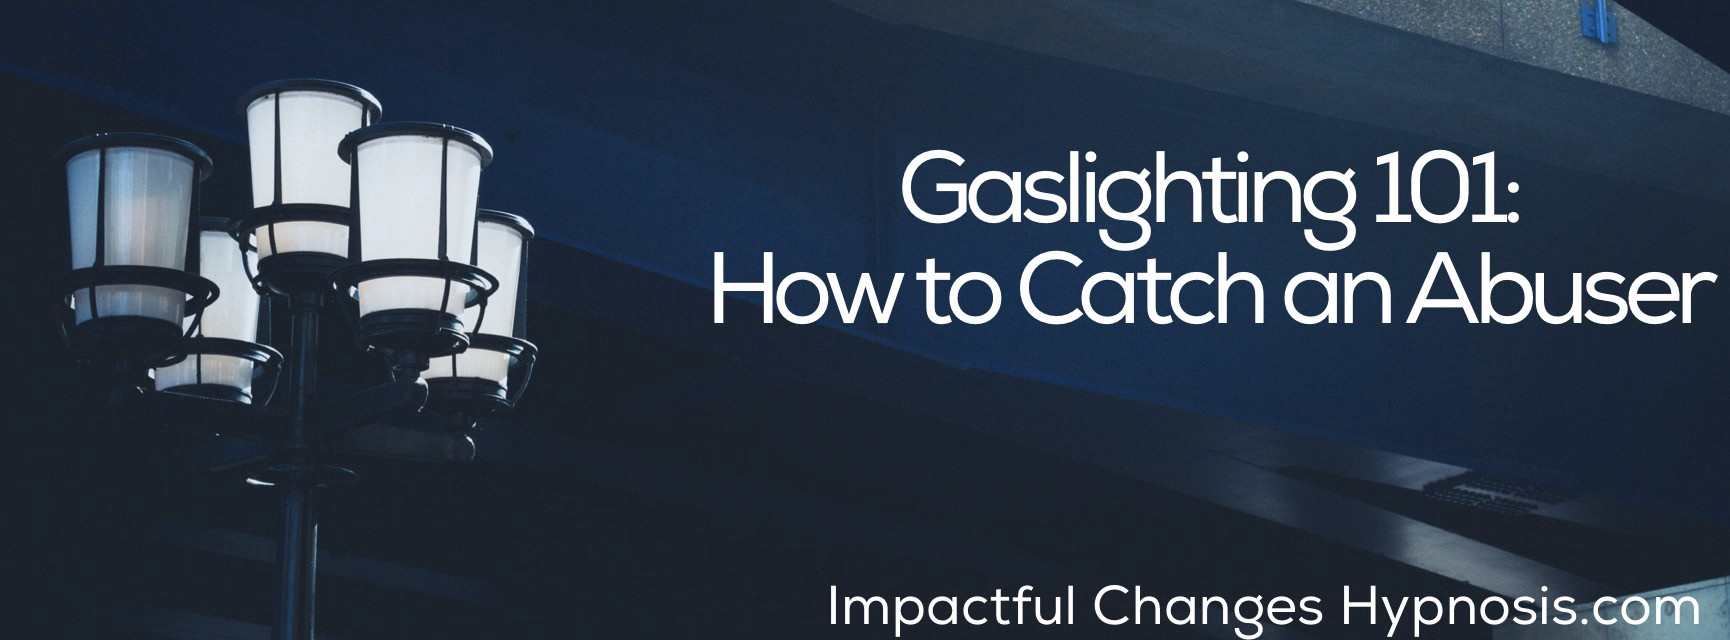 Where does the term gaslighting come from